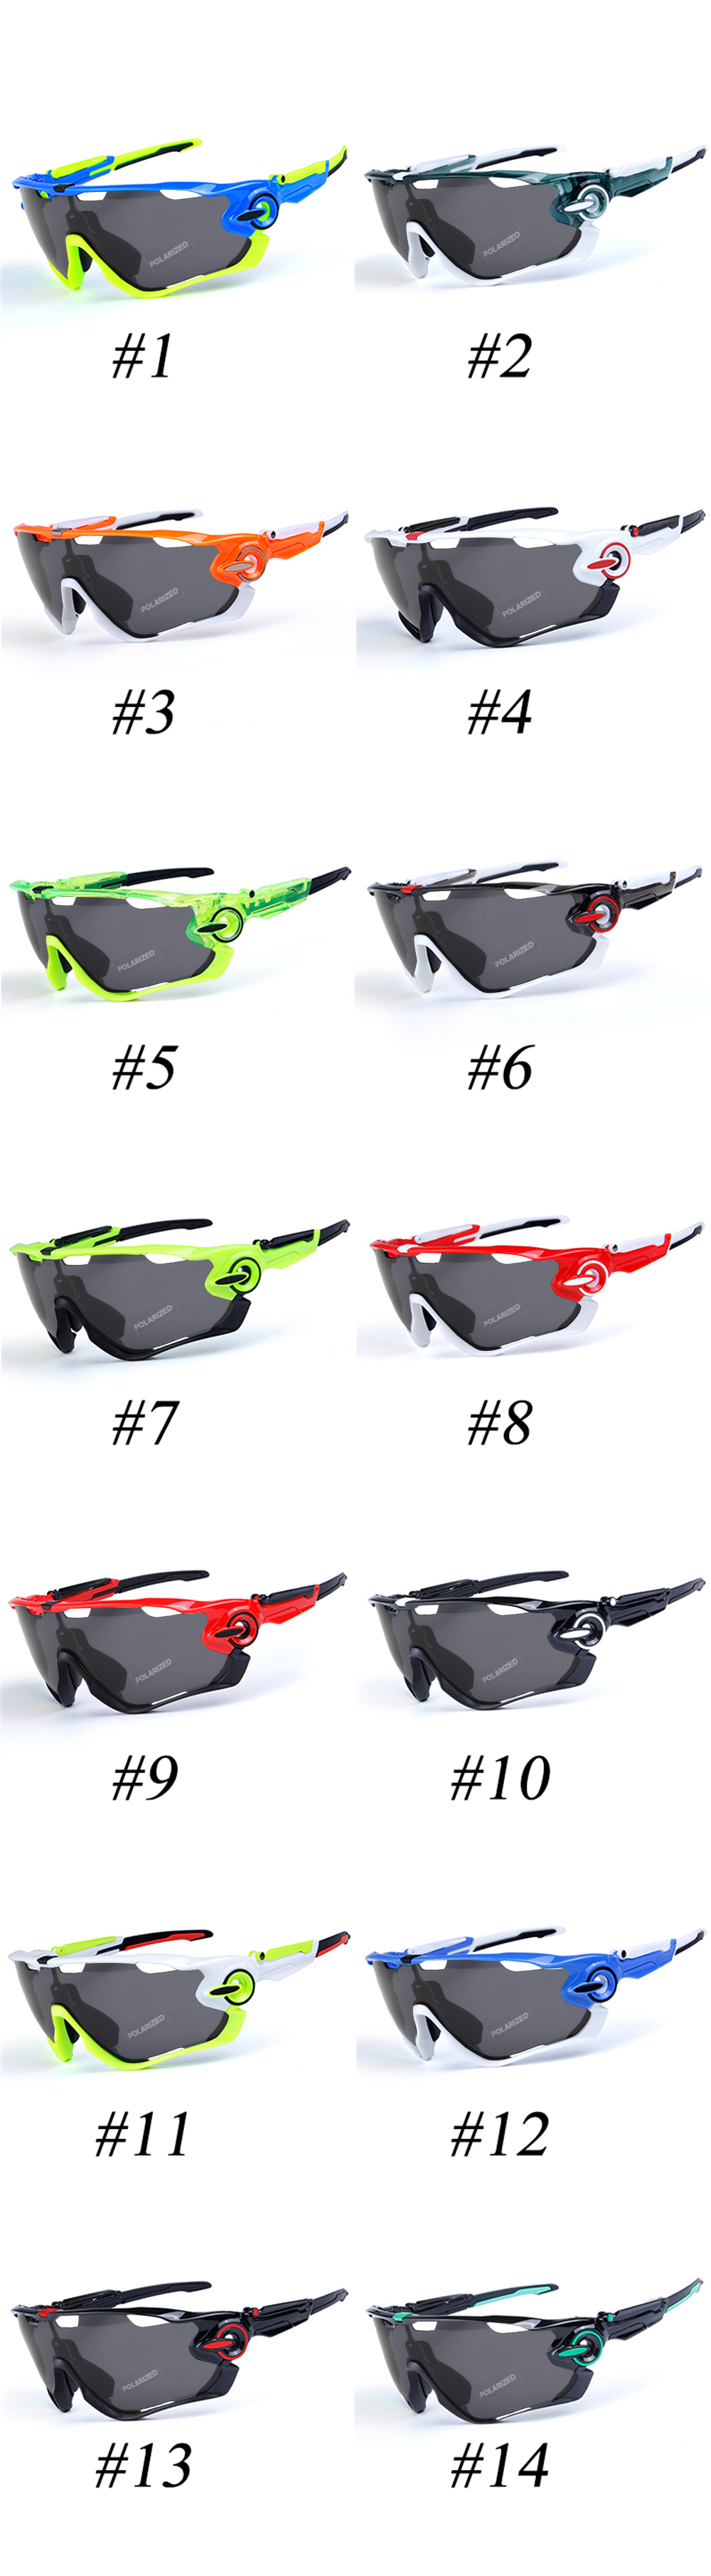 polarized cycling sunglasses color options